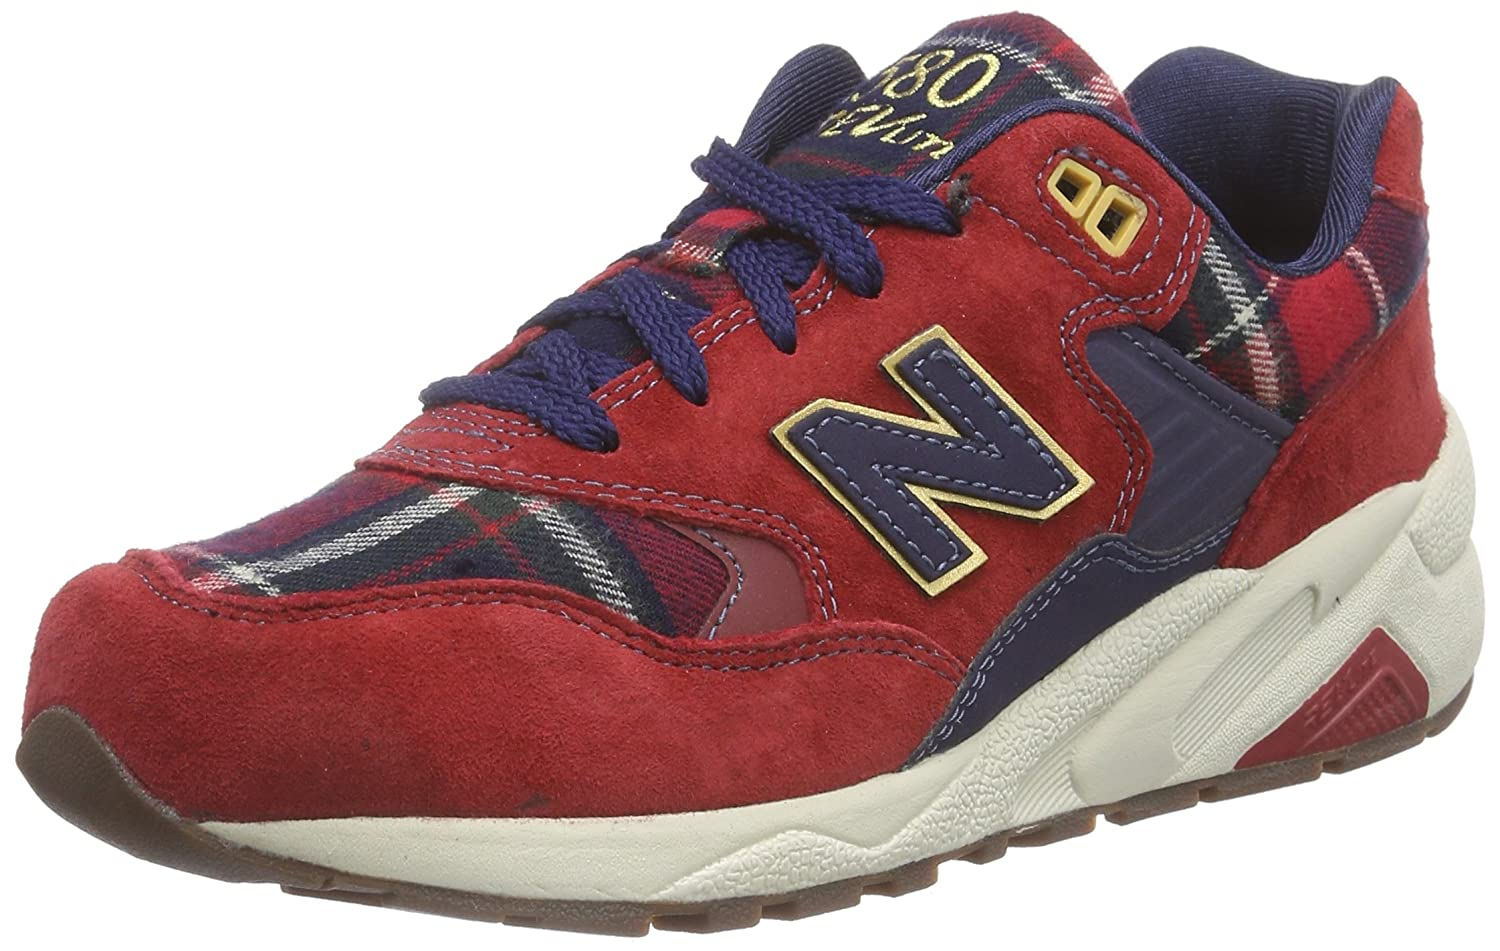 new arrival 96a87 e2151 coupon code for new balance sneaker 580 5c844 1e53f